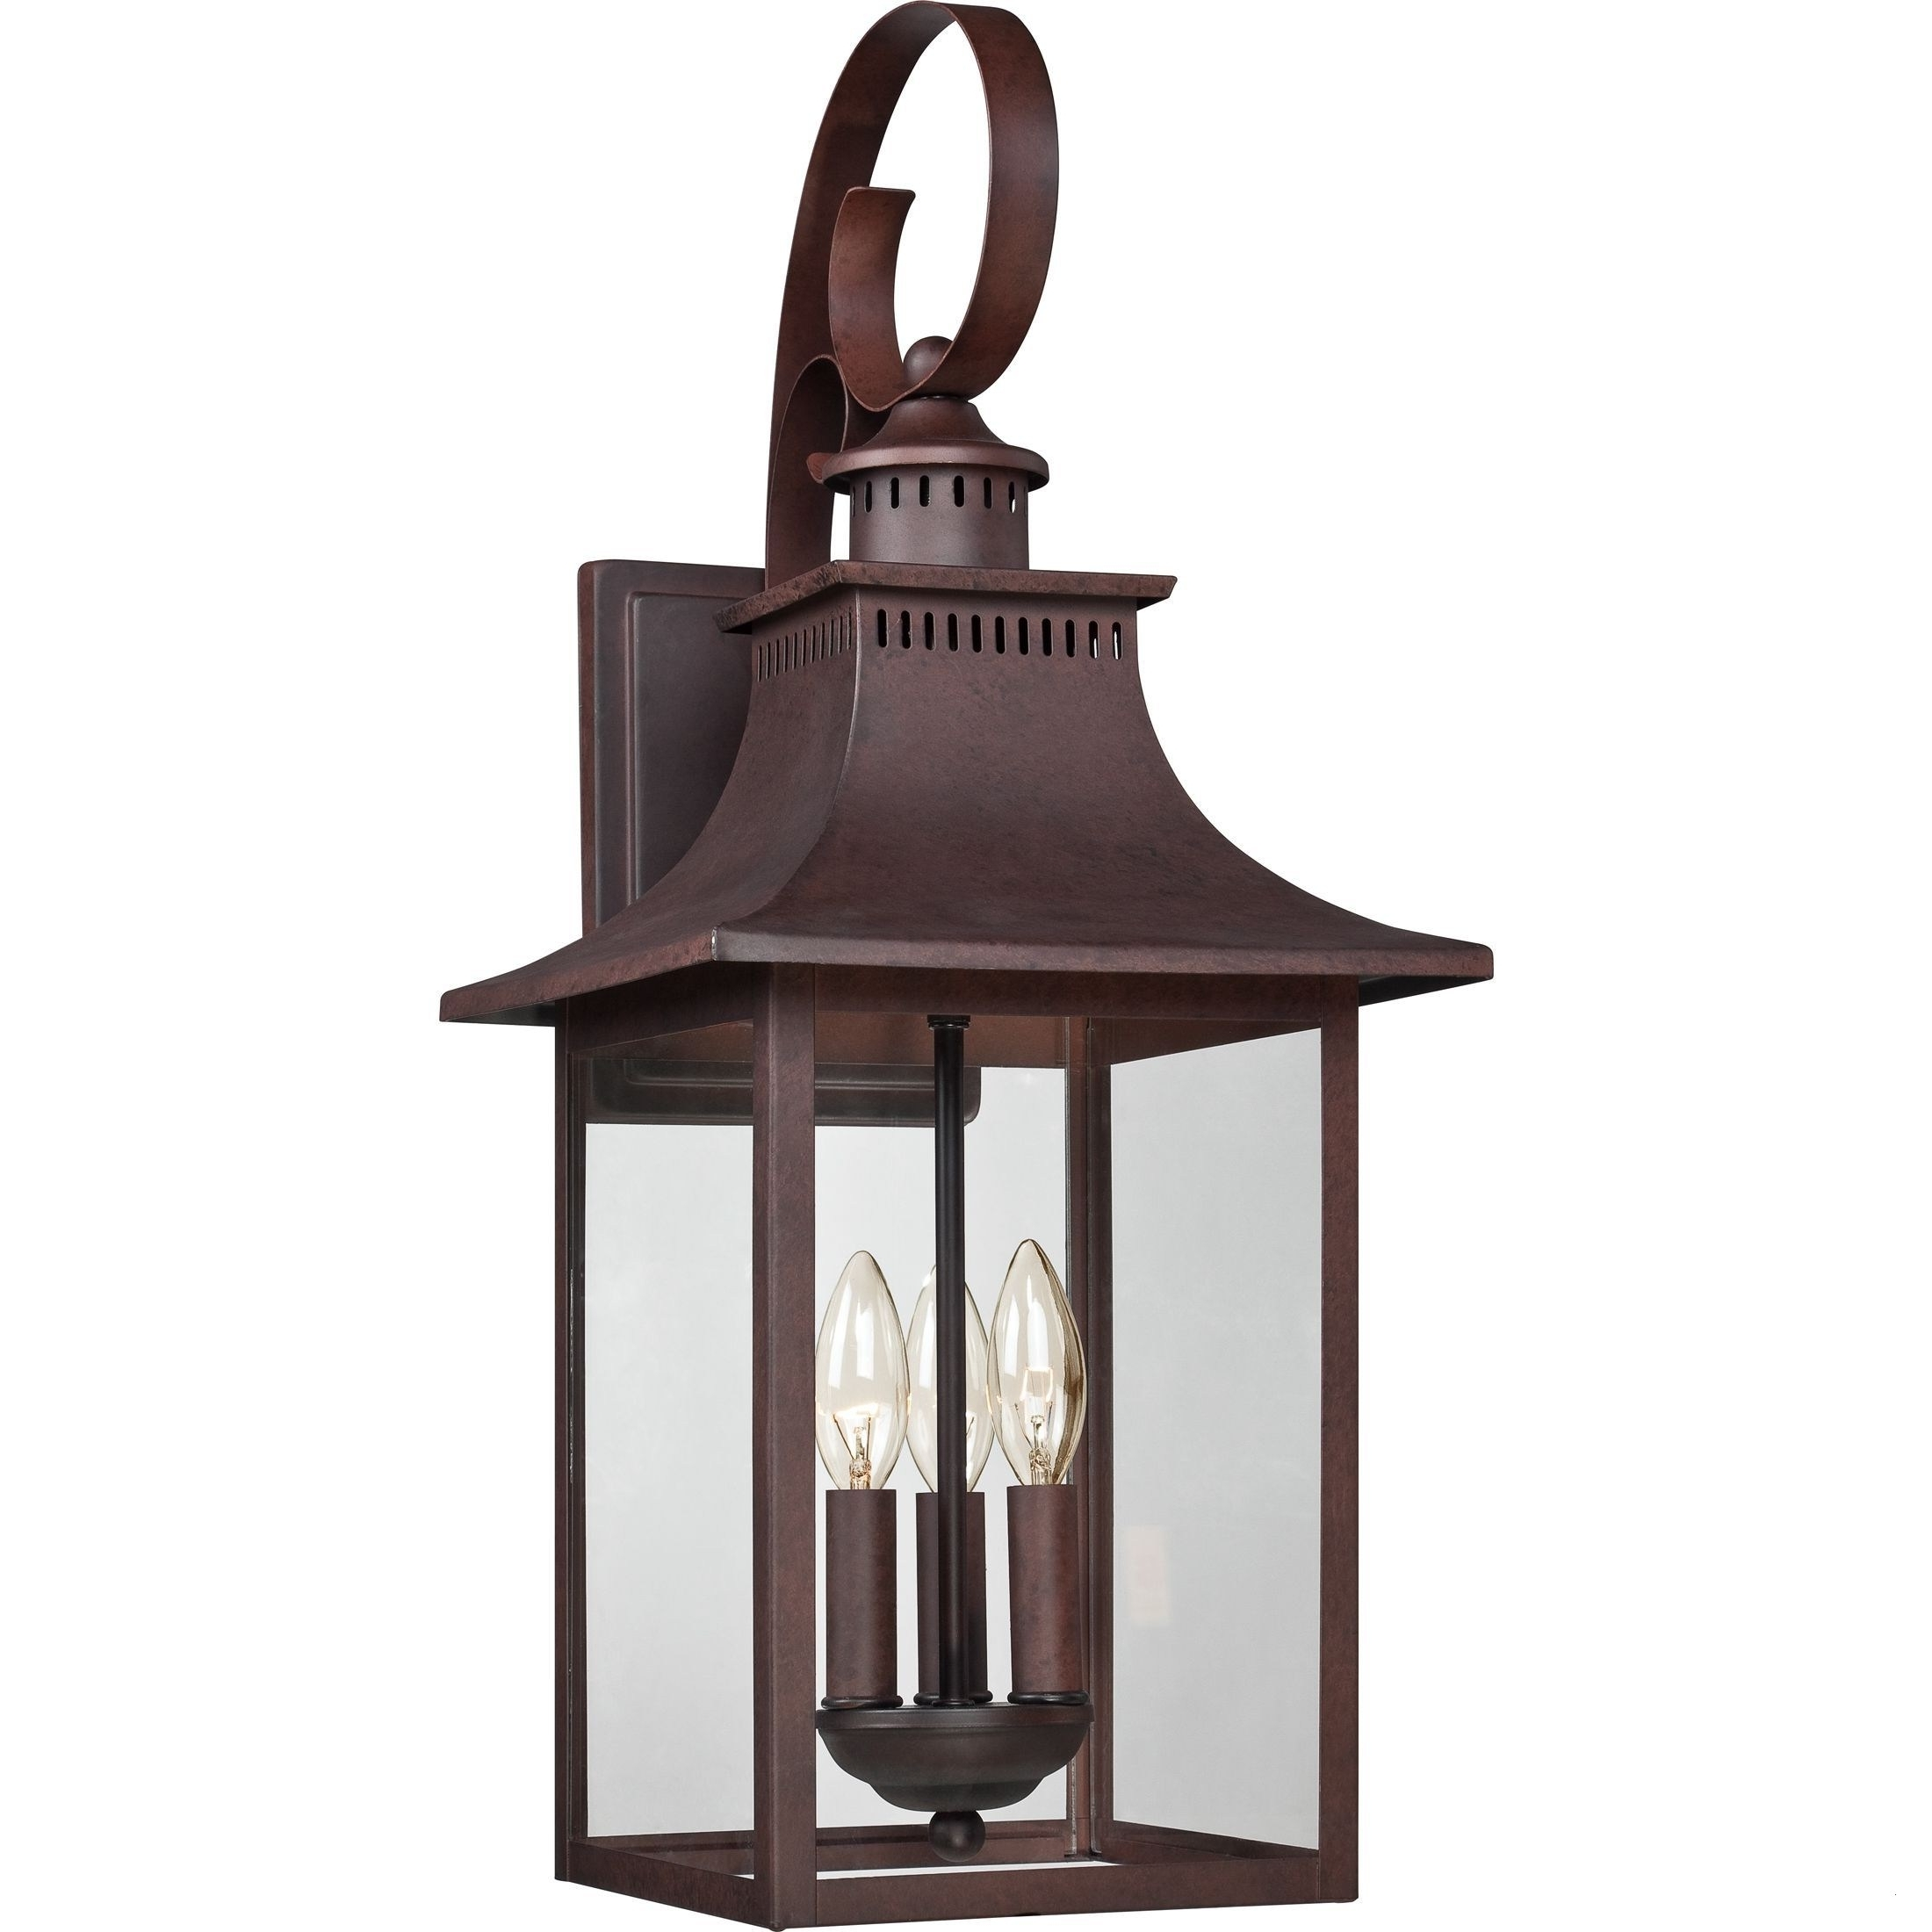 Quoizel Outdoor Lights Lovely Quoizel Chancellor 3 Light Copper In Most Up To Date Quoizel Outdoor Lanterns (View 16 of 20)